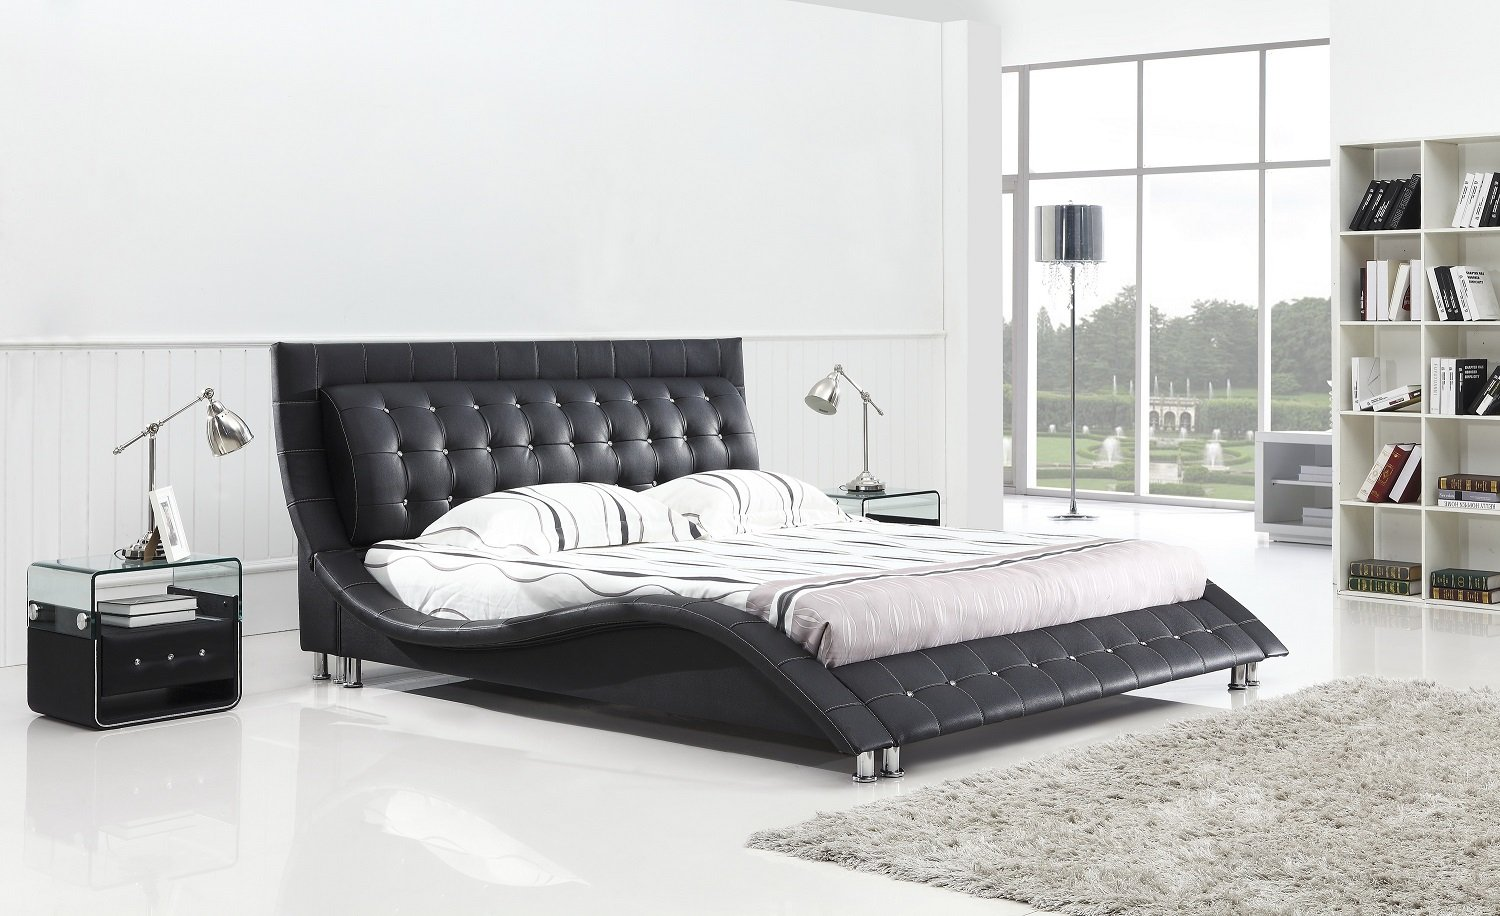 Modern bedroom furniture dublin - Amazon Com Dublin Modern Platform Bed Queen Size Black Kitchen Dining